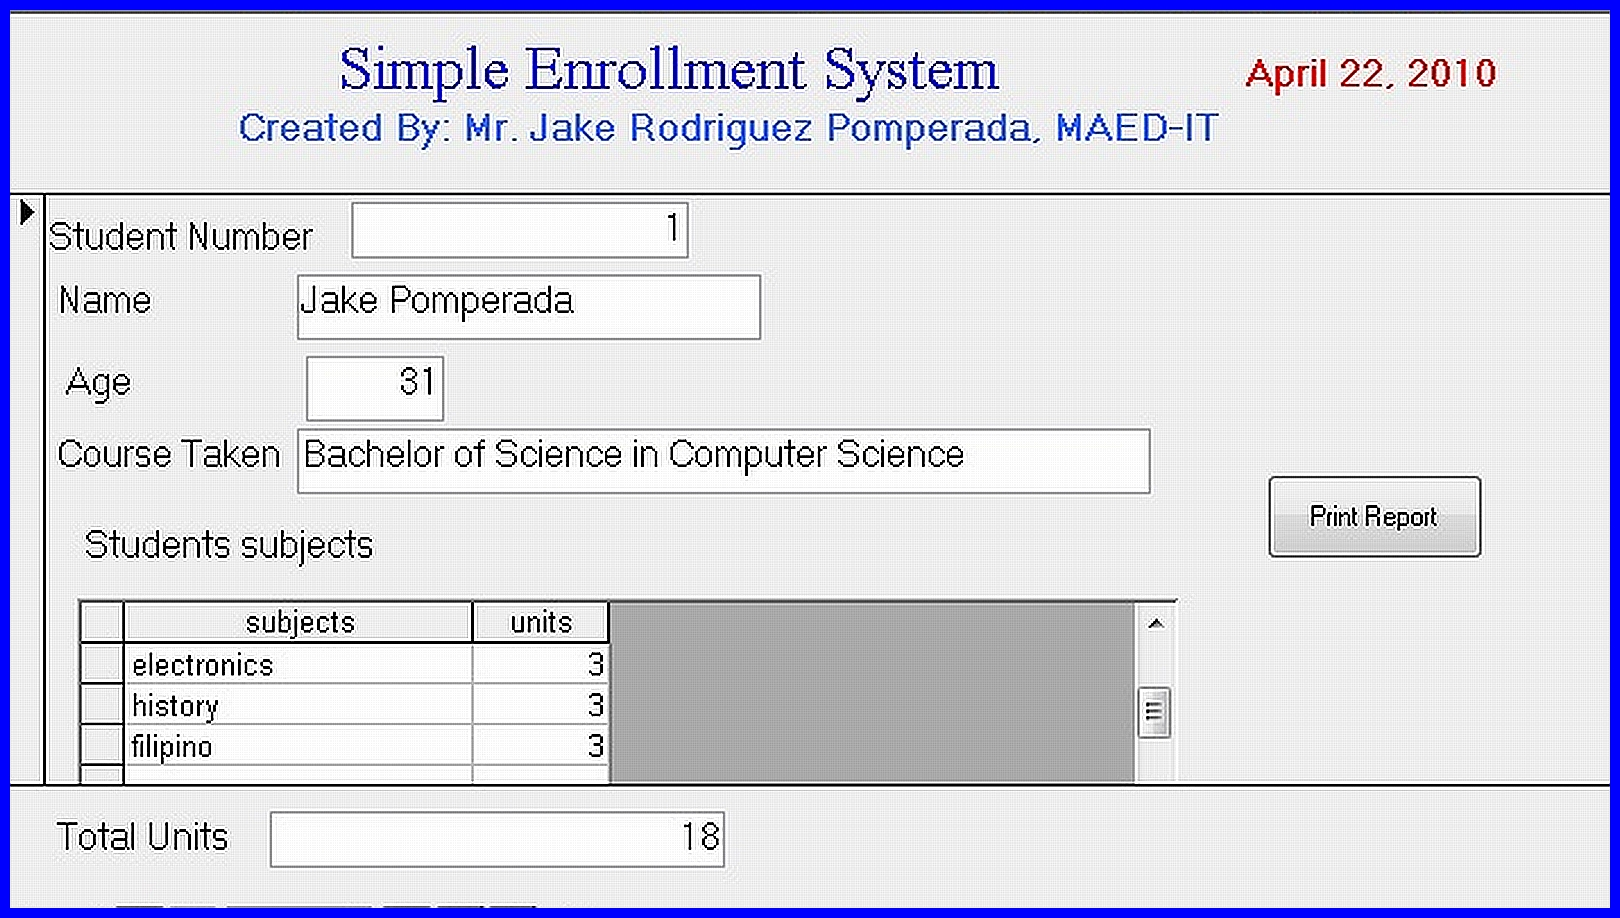 enrollment system A worldwide online system designed to perform the process involved in registration, advising, assessments, and payments of students as well as scheduling of classes.